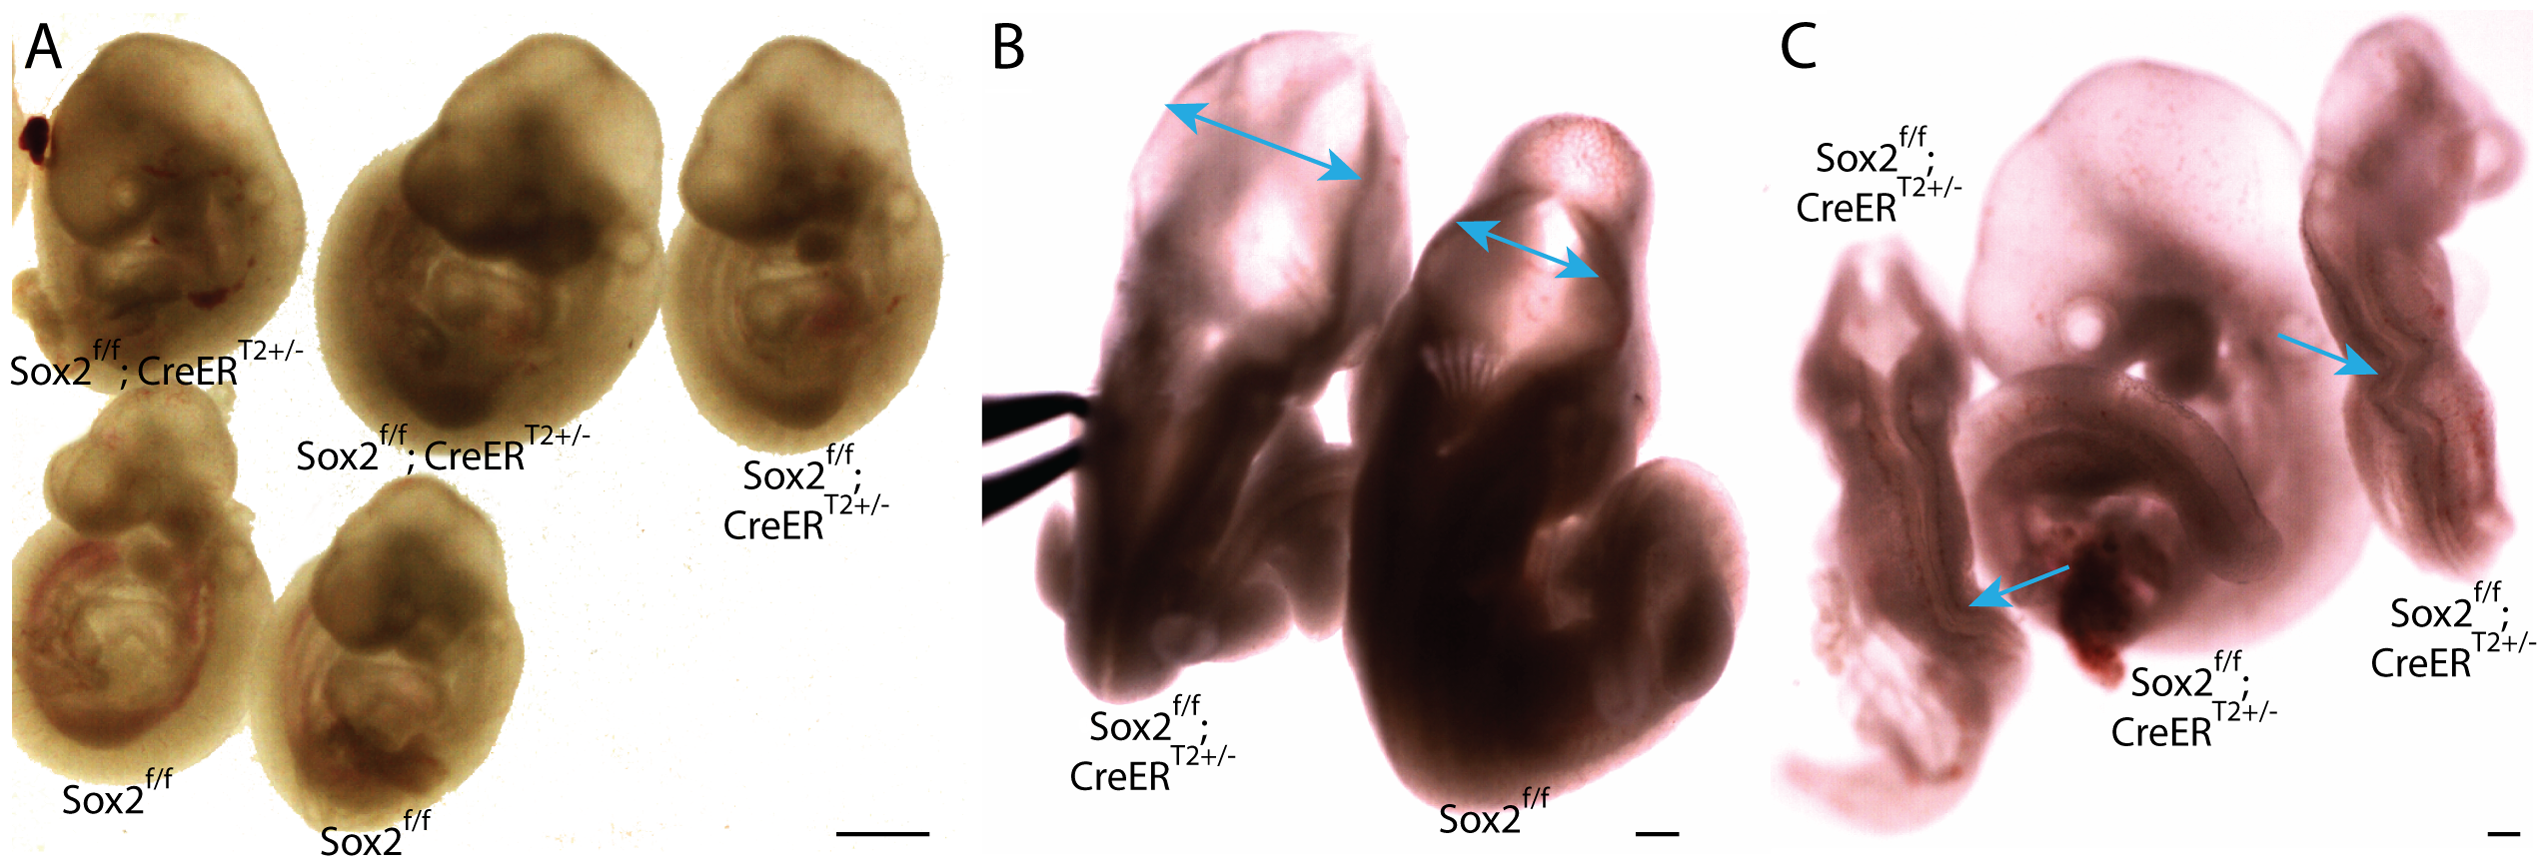 Depletion of pluripotency factor Sox2 does not phenocopy Oct4 depletion ∼E7.5.